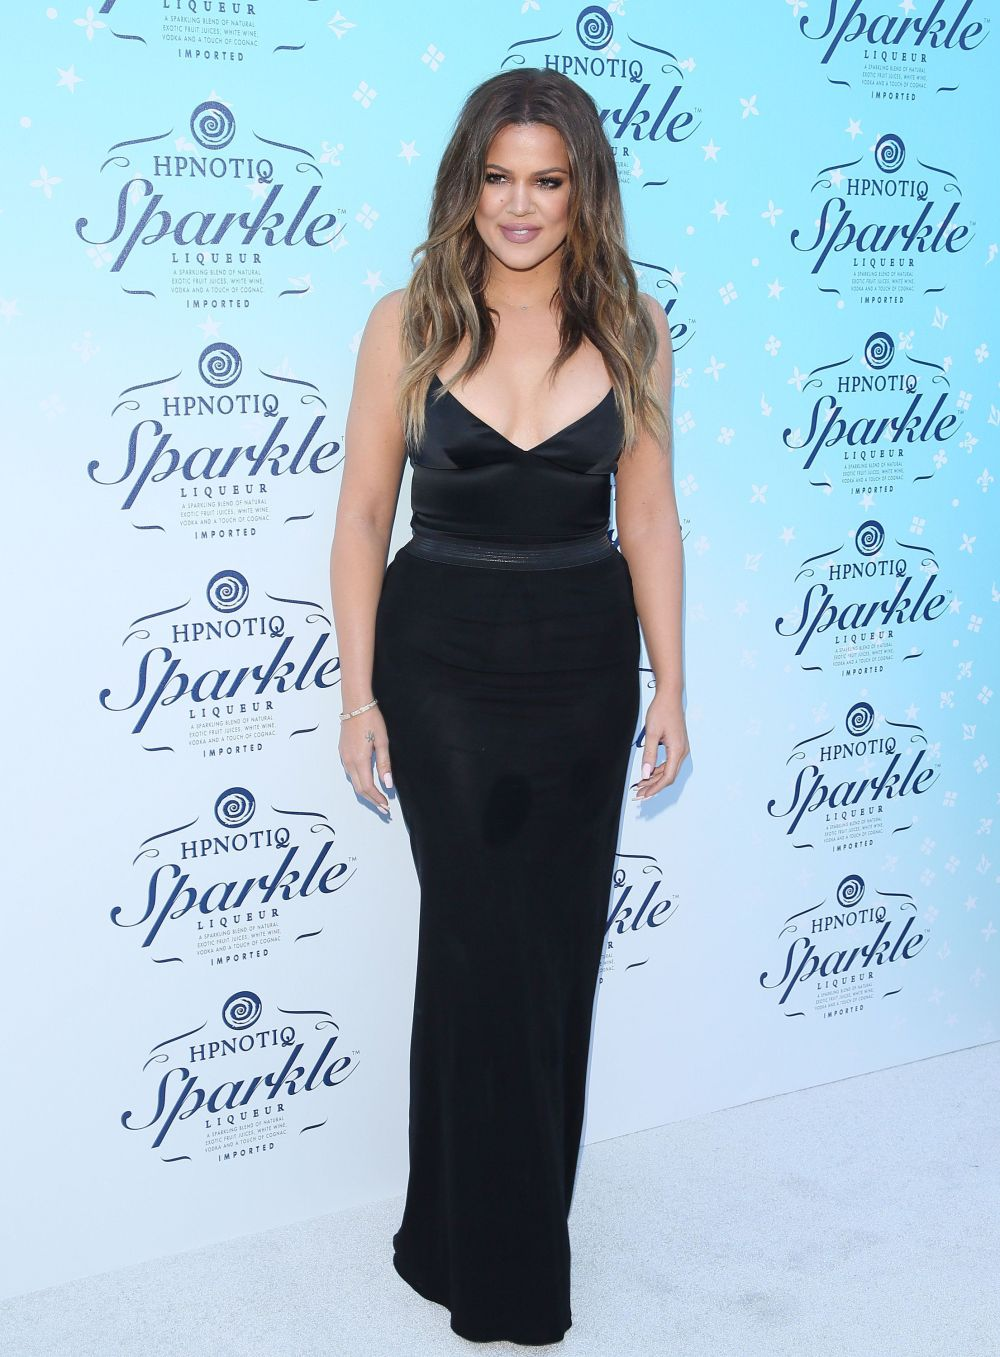 Celebrating thelaunch of Hpnotiq Sparkle liqueur at Mr. C Beverly Hills in Beverly Hills.